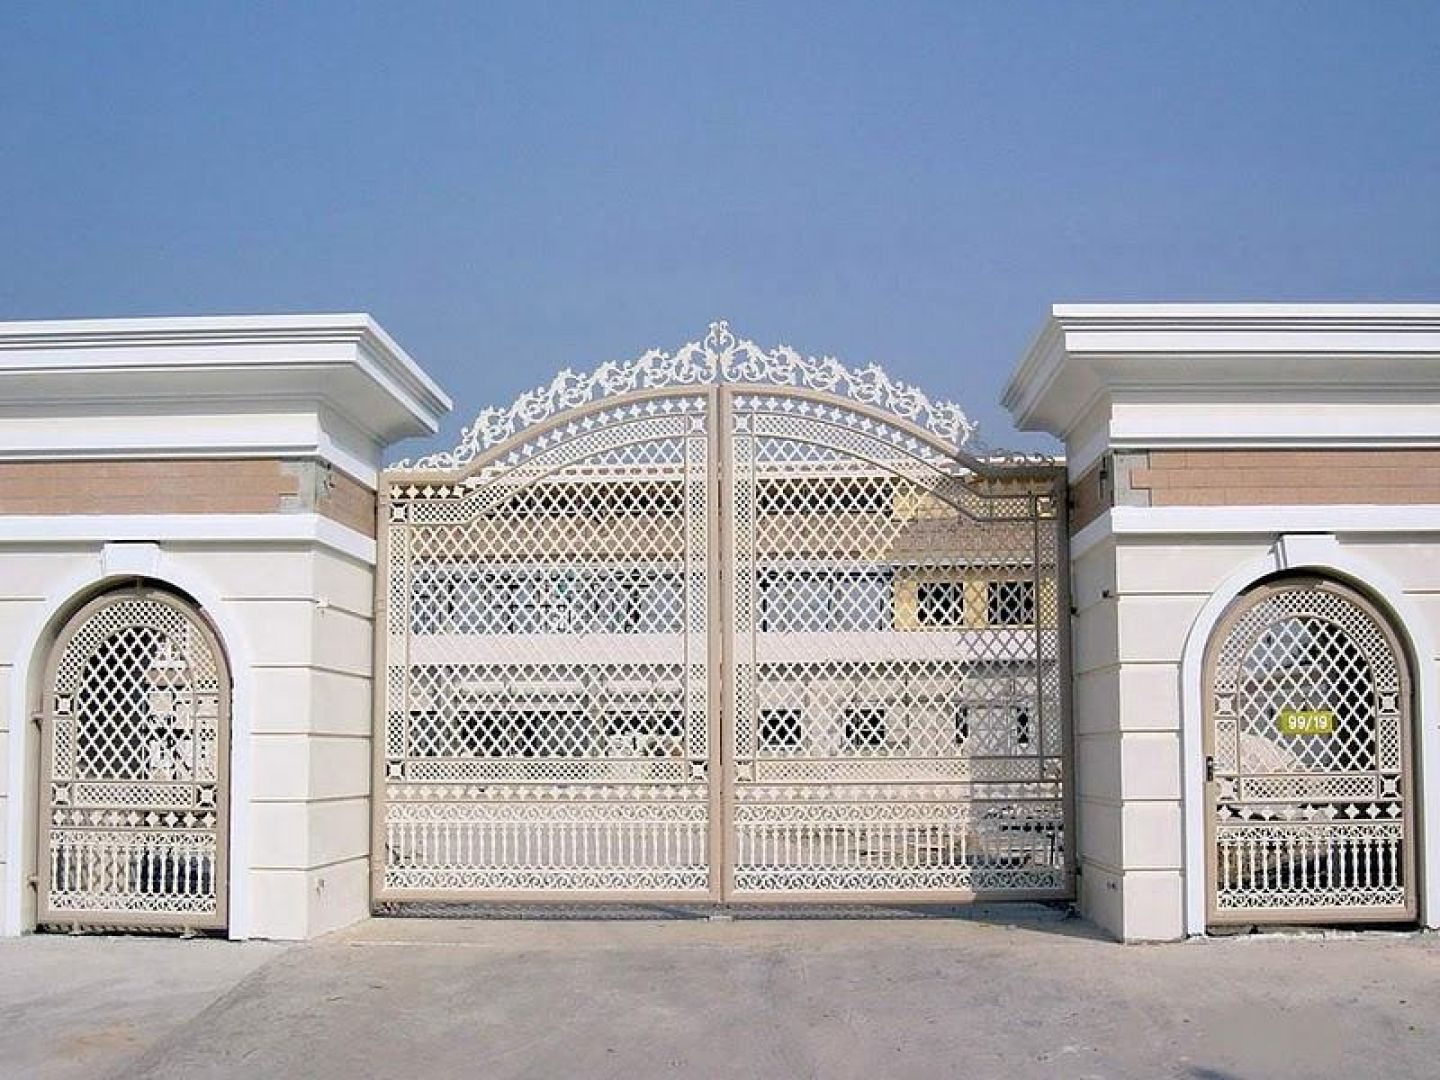 Gate Design Ideas 25 best gate ideas on pinterest build meaning nursery and project meaning Maybe The Impressive White Iron Gate And Fence Beyond Which Lies Zanis House White Wrought Iron Home Gate Design Ideas